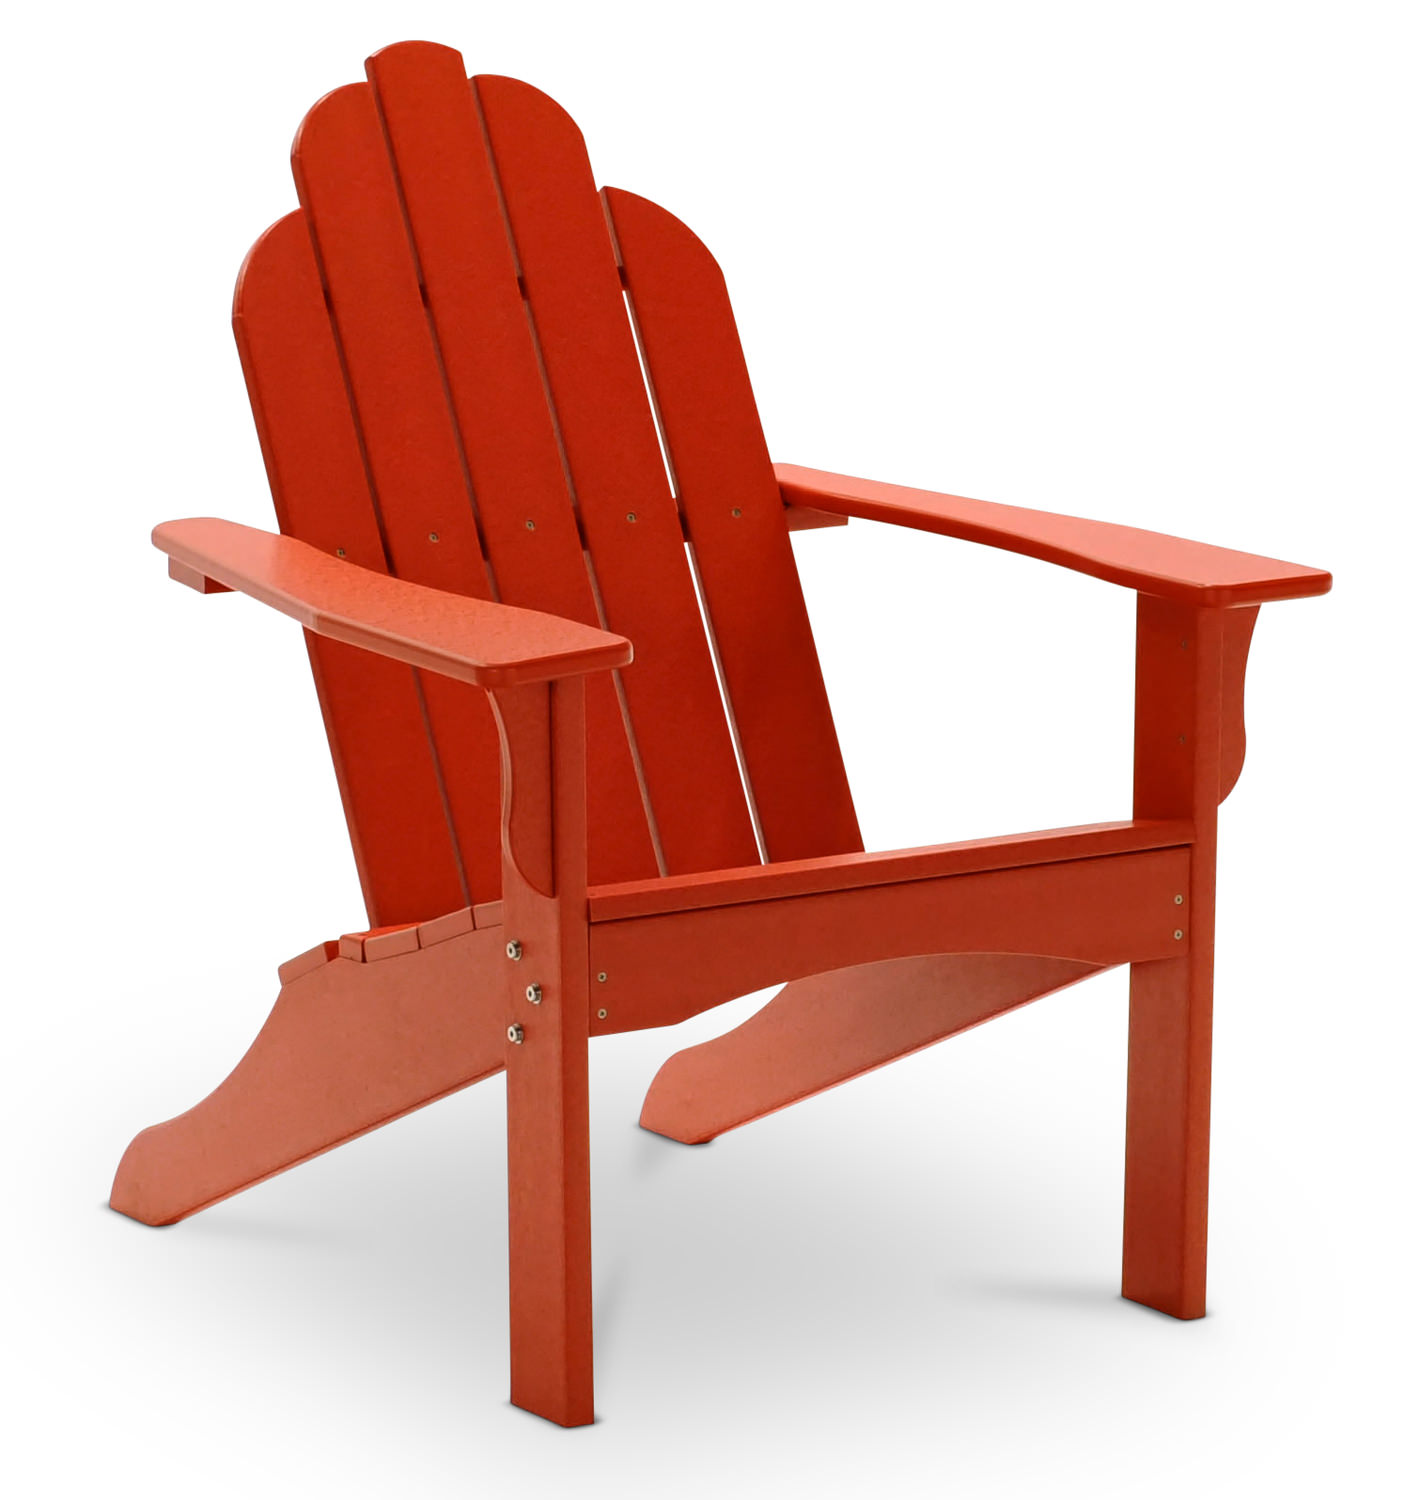 Merveilleux Yarmouth Adirondack Chair   Red ...